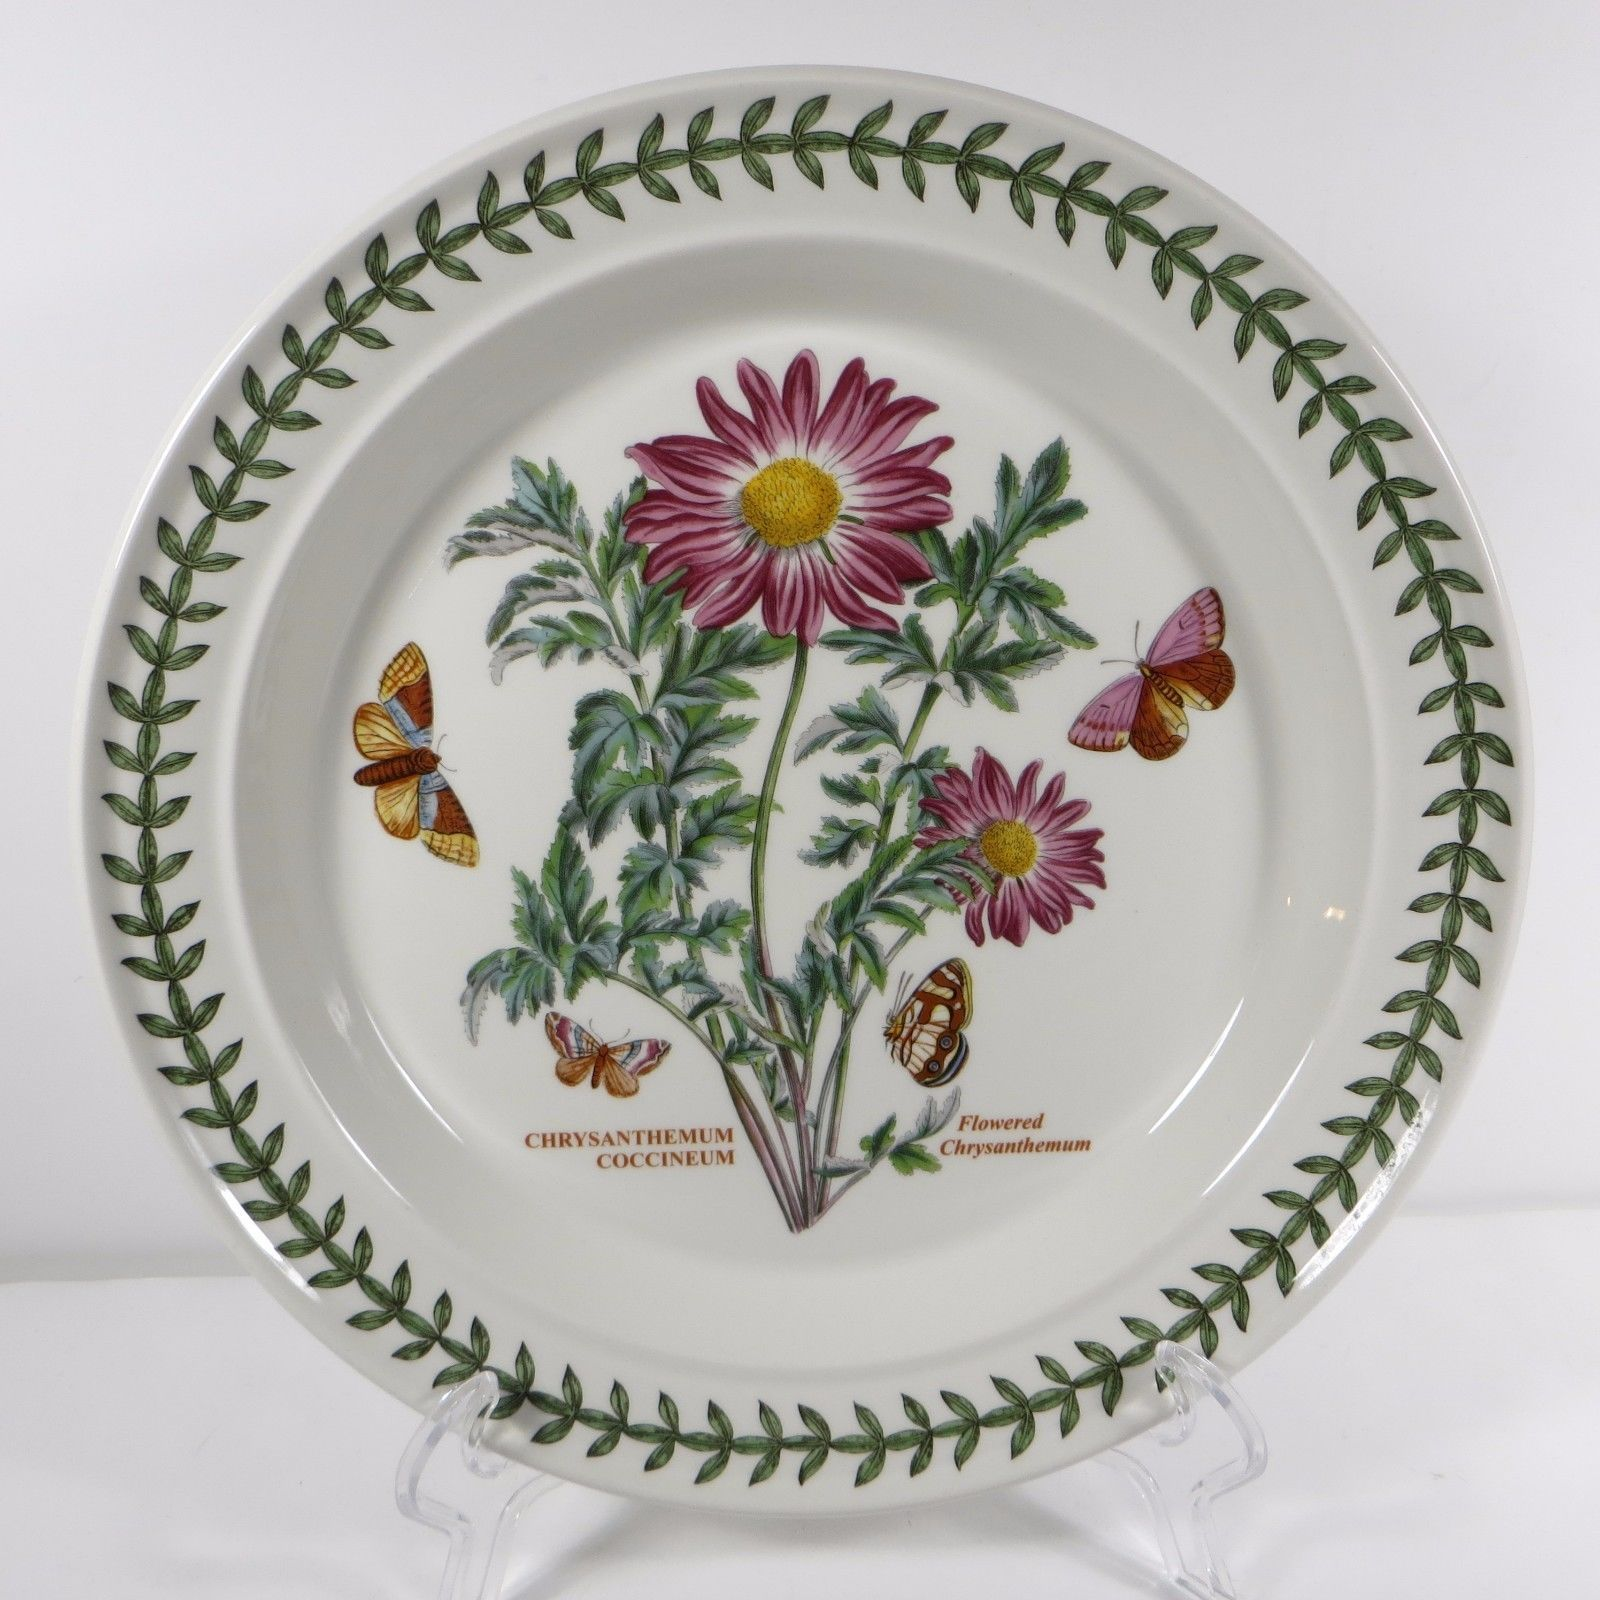 PORTMEIRION Botanic Garden Dinner Plate Flowered Chrysanthemum Coccineum  Flower